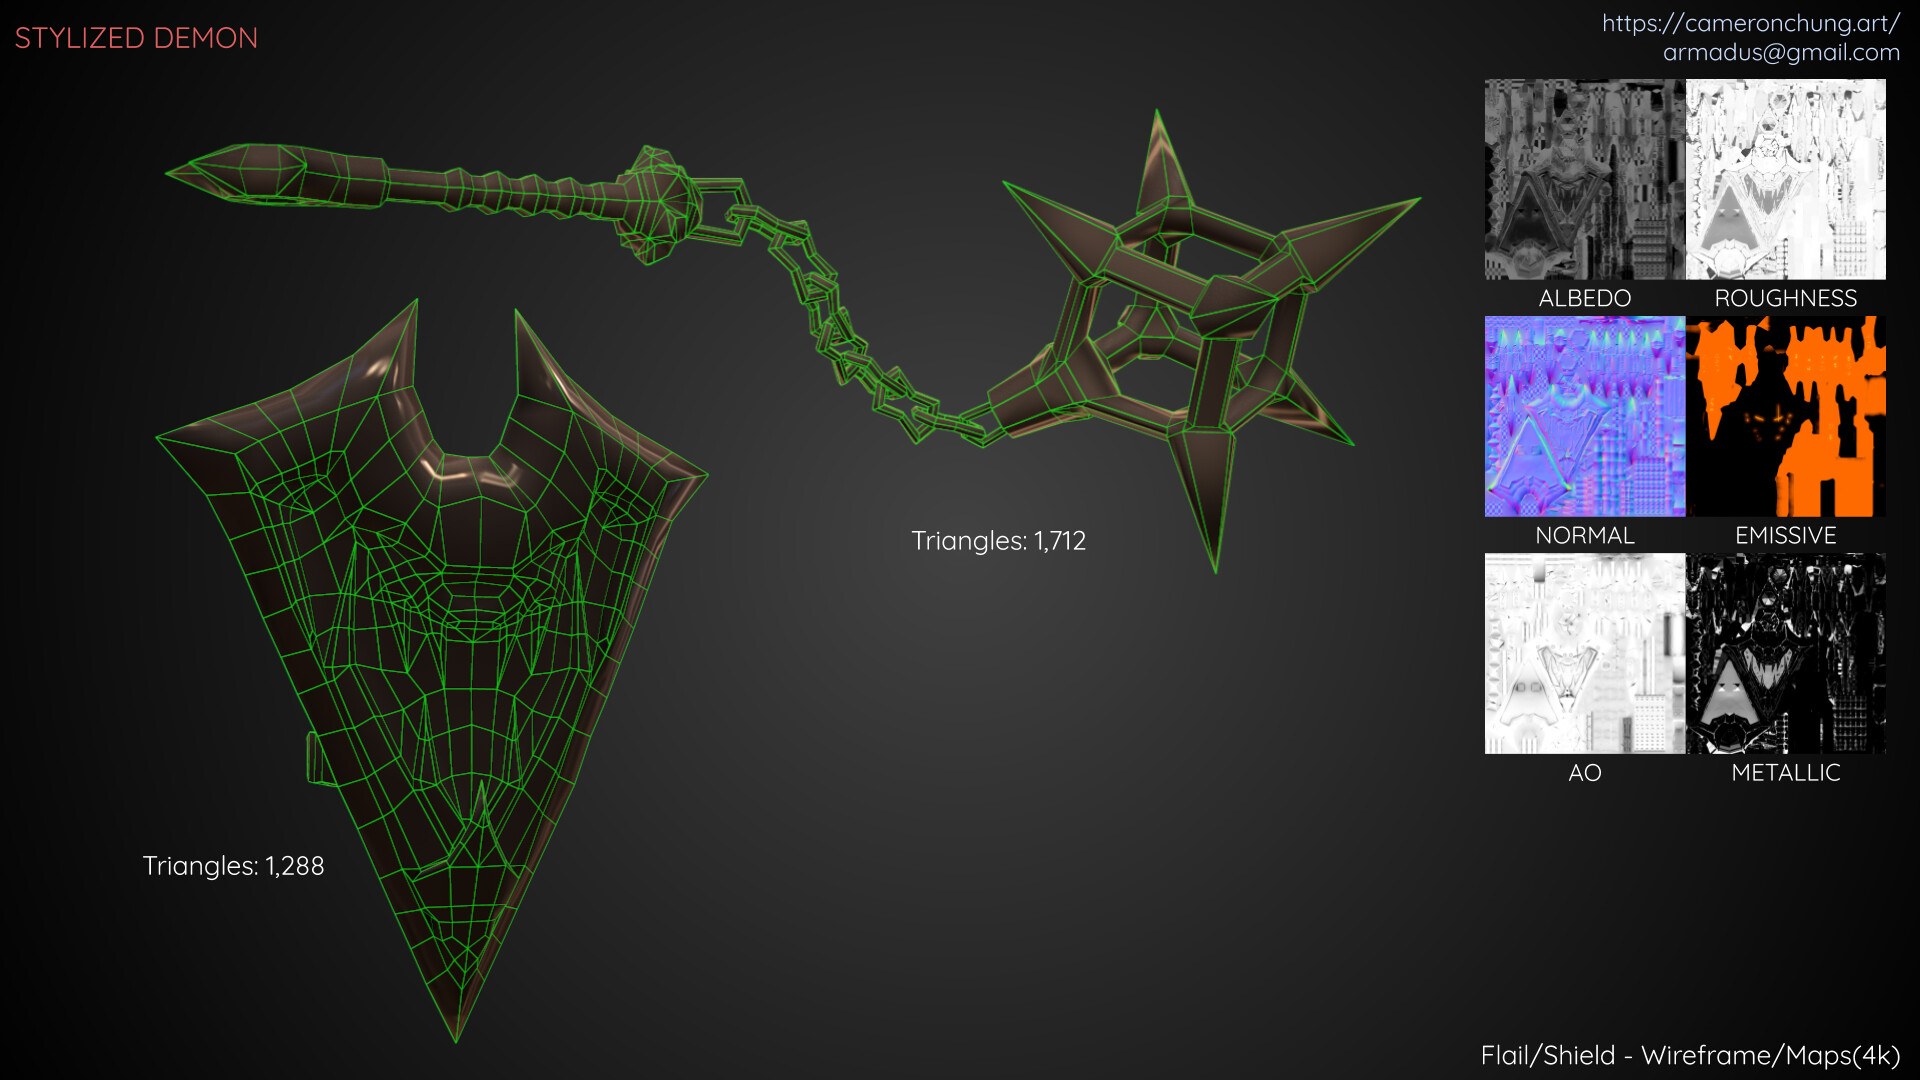 Flail / Shield - Wireframe